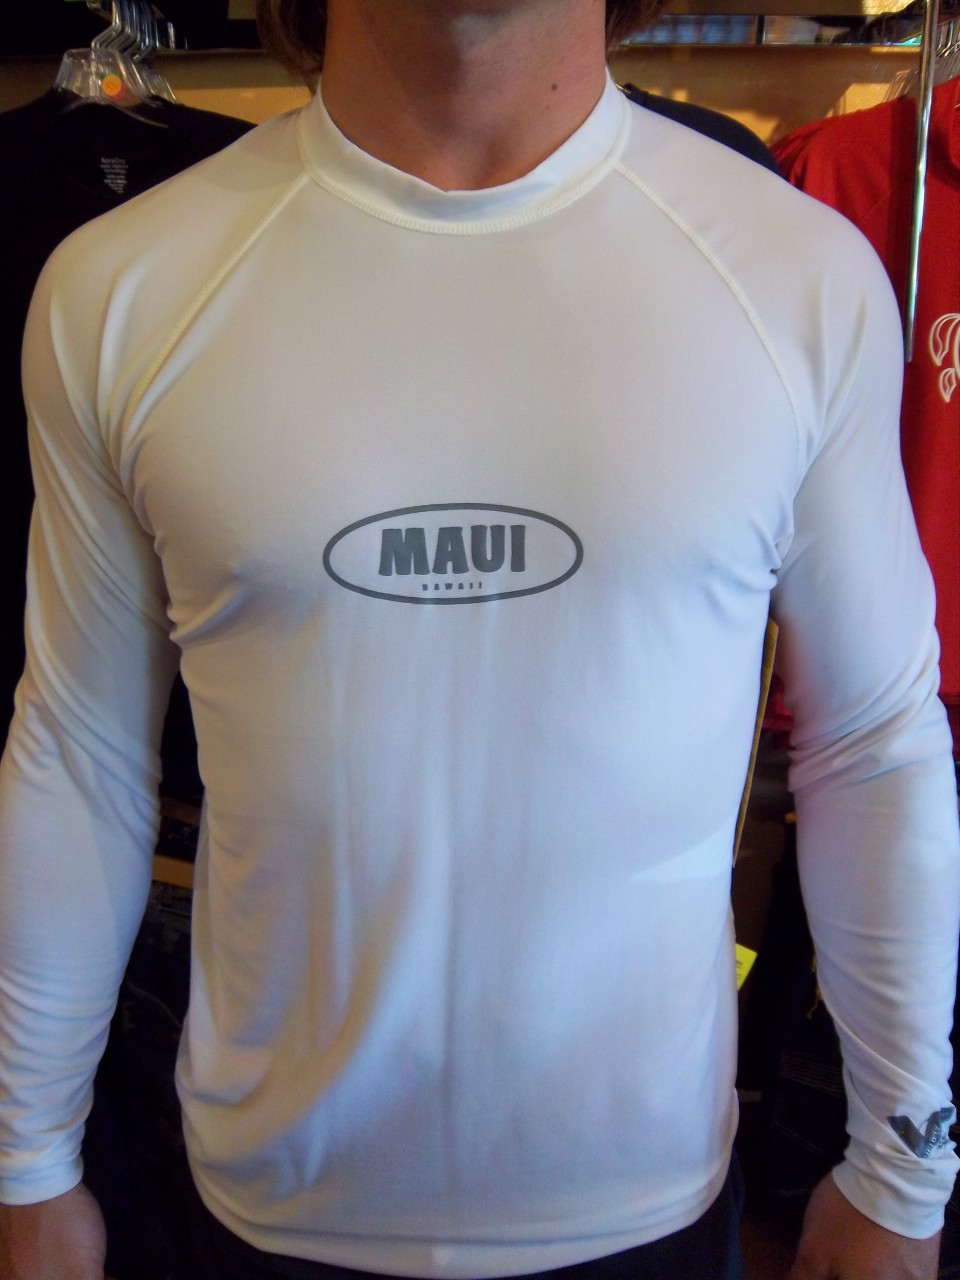 943c3de17 White Long Sleeve UV Shirt w/ Maui Logo. Click to enlarge